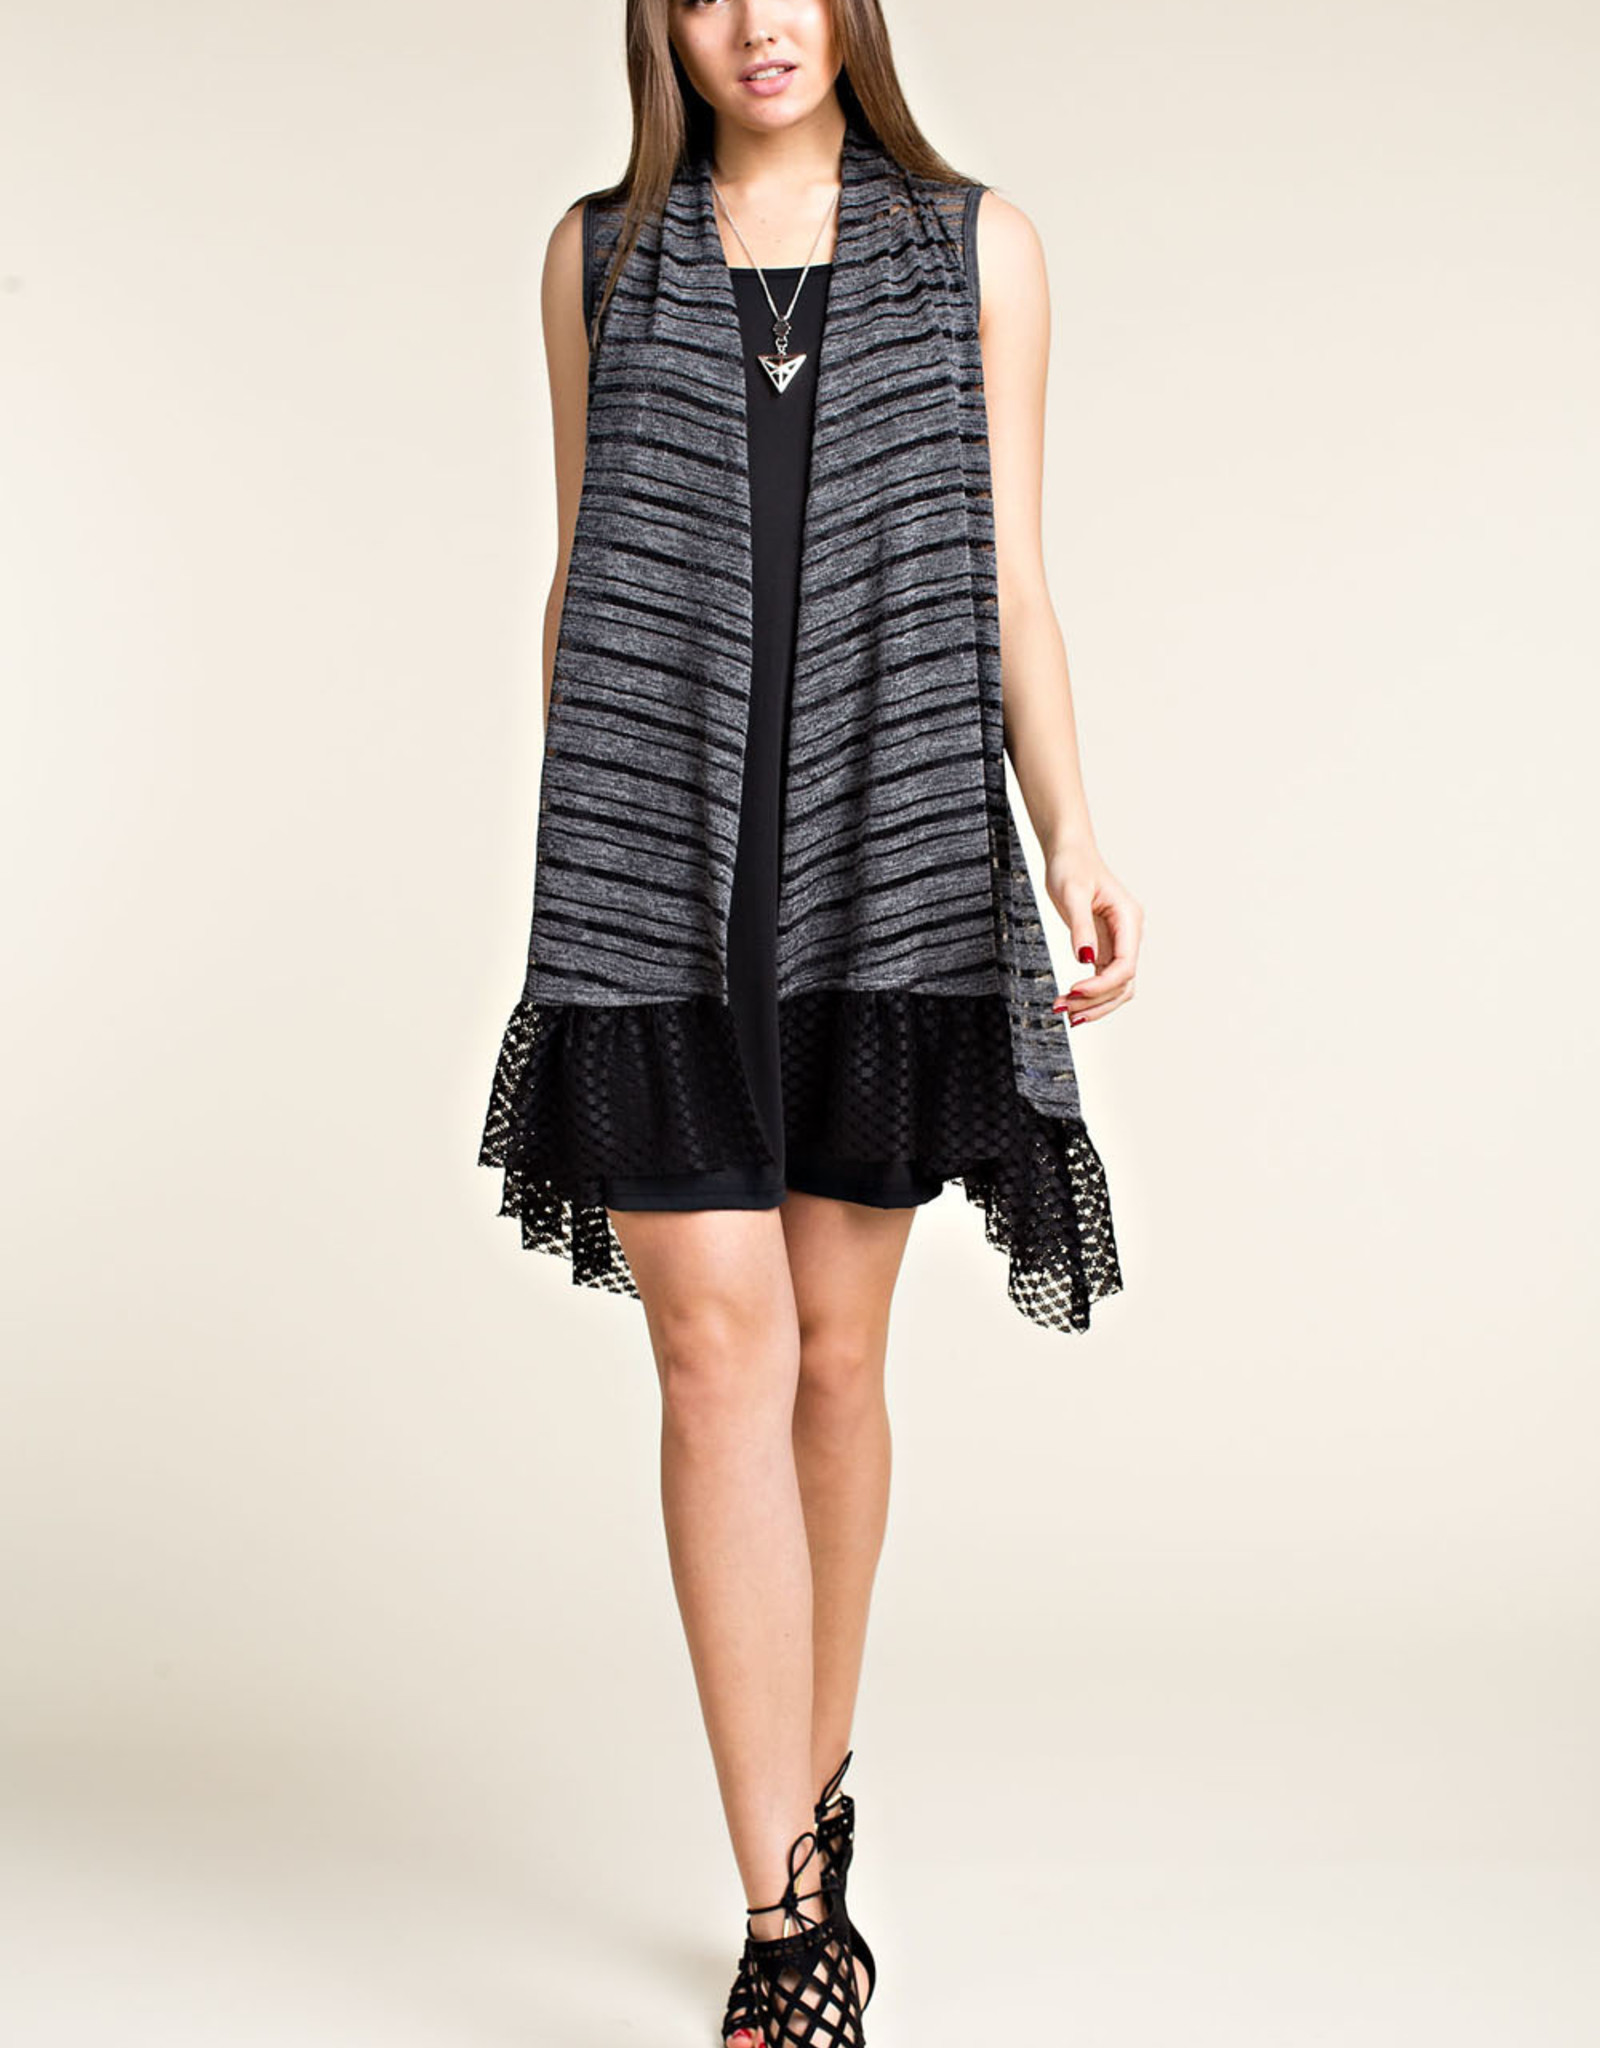 Vocal 6104 Charcoal vest wLace